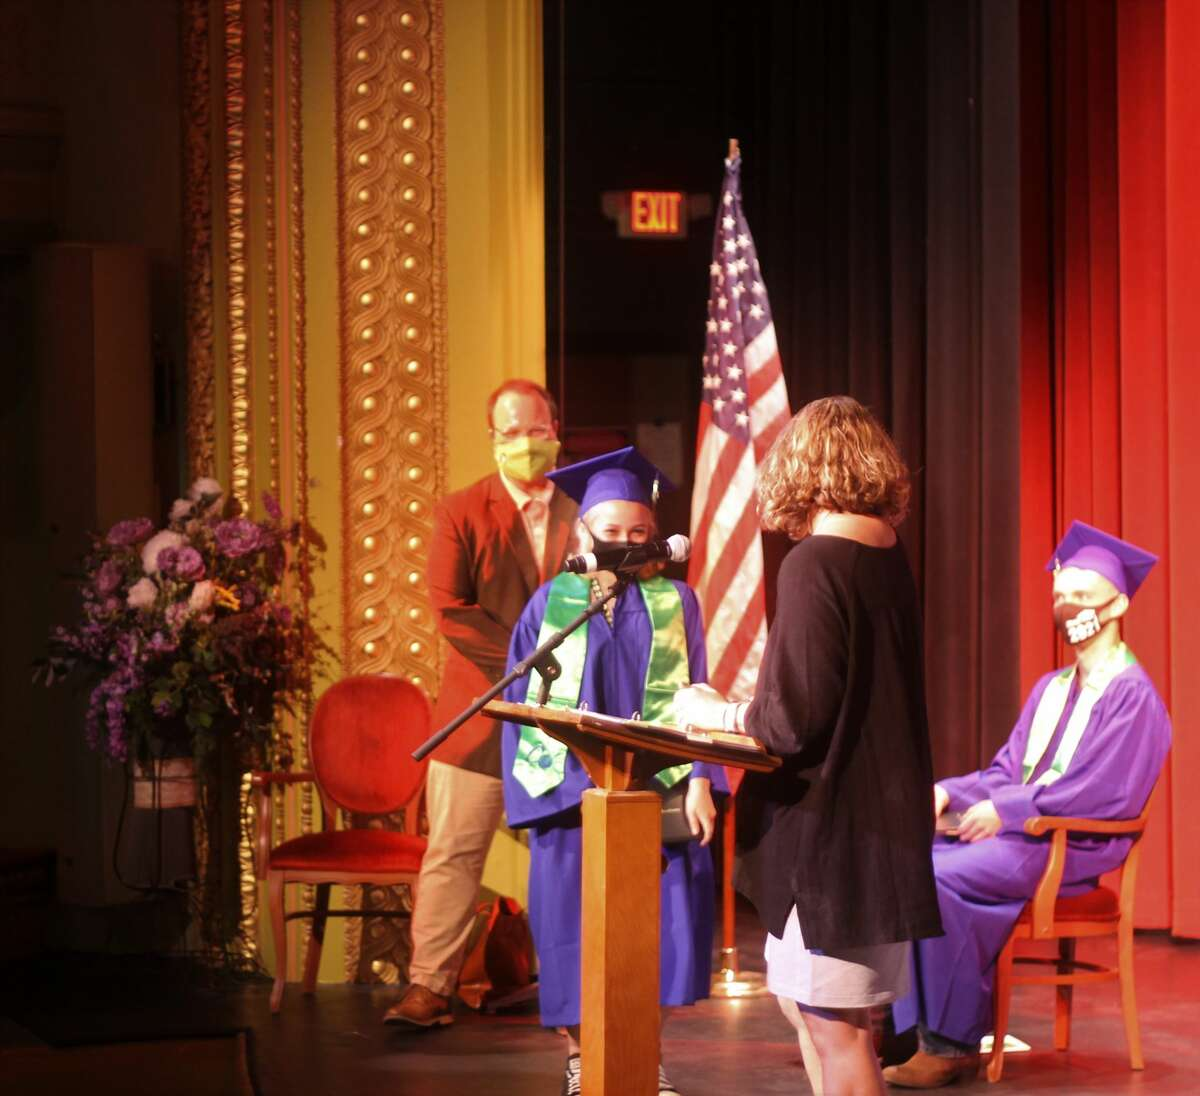 CASMAN Academy graduate Lita Shepard walks across the stage after receiving her diploma during a graduation ceremony at the Ramsdell Theatre on Thursday.